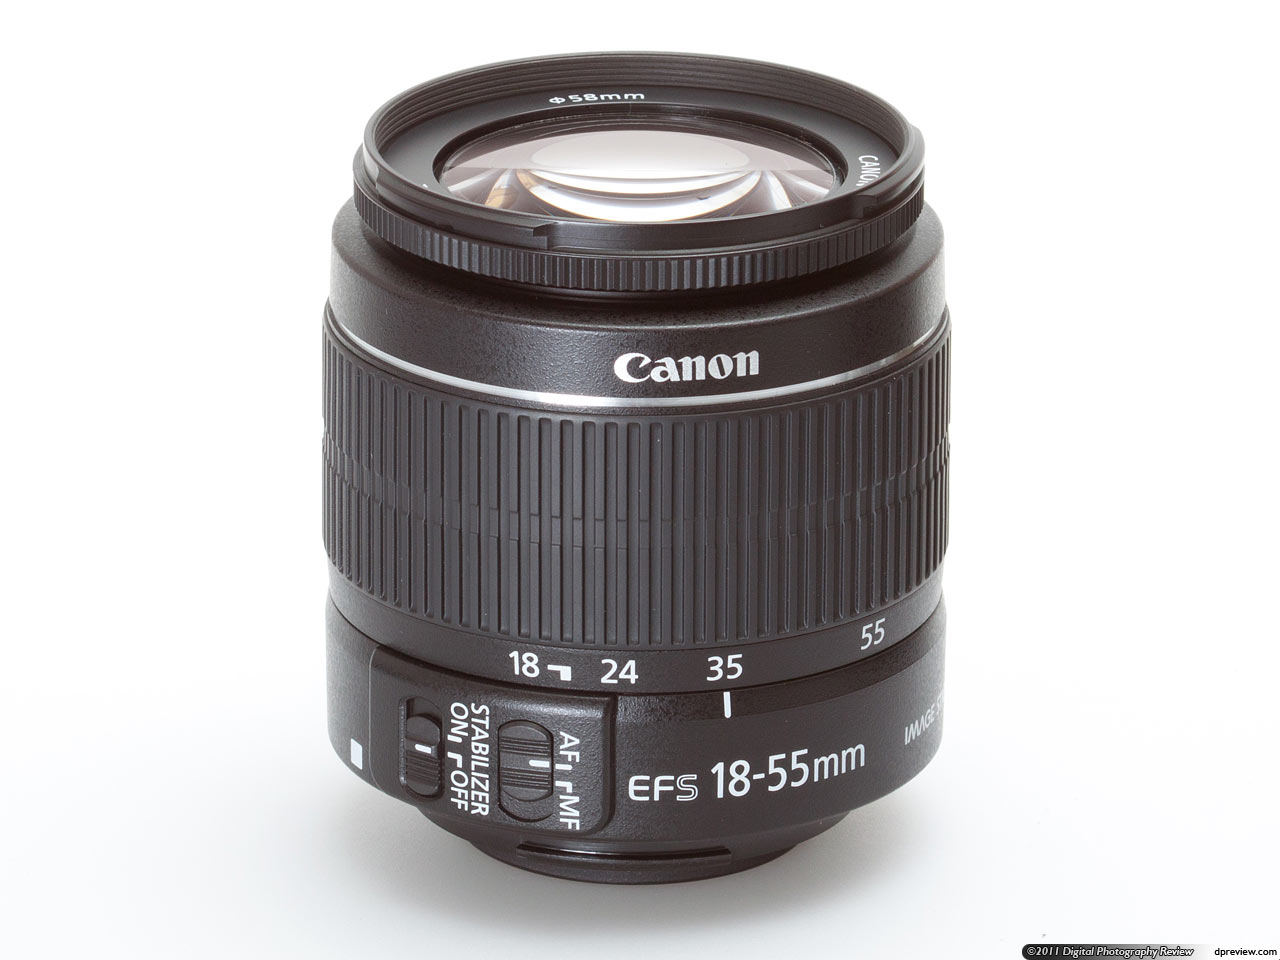 Engaging Revised Kit Lens Canon Is Ii Canon Rebel Eos Digital Photography Review Ken Rockwell Canon T3i Review Canon T3i Review Photography Blog dpreview Canon T3i Review